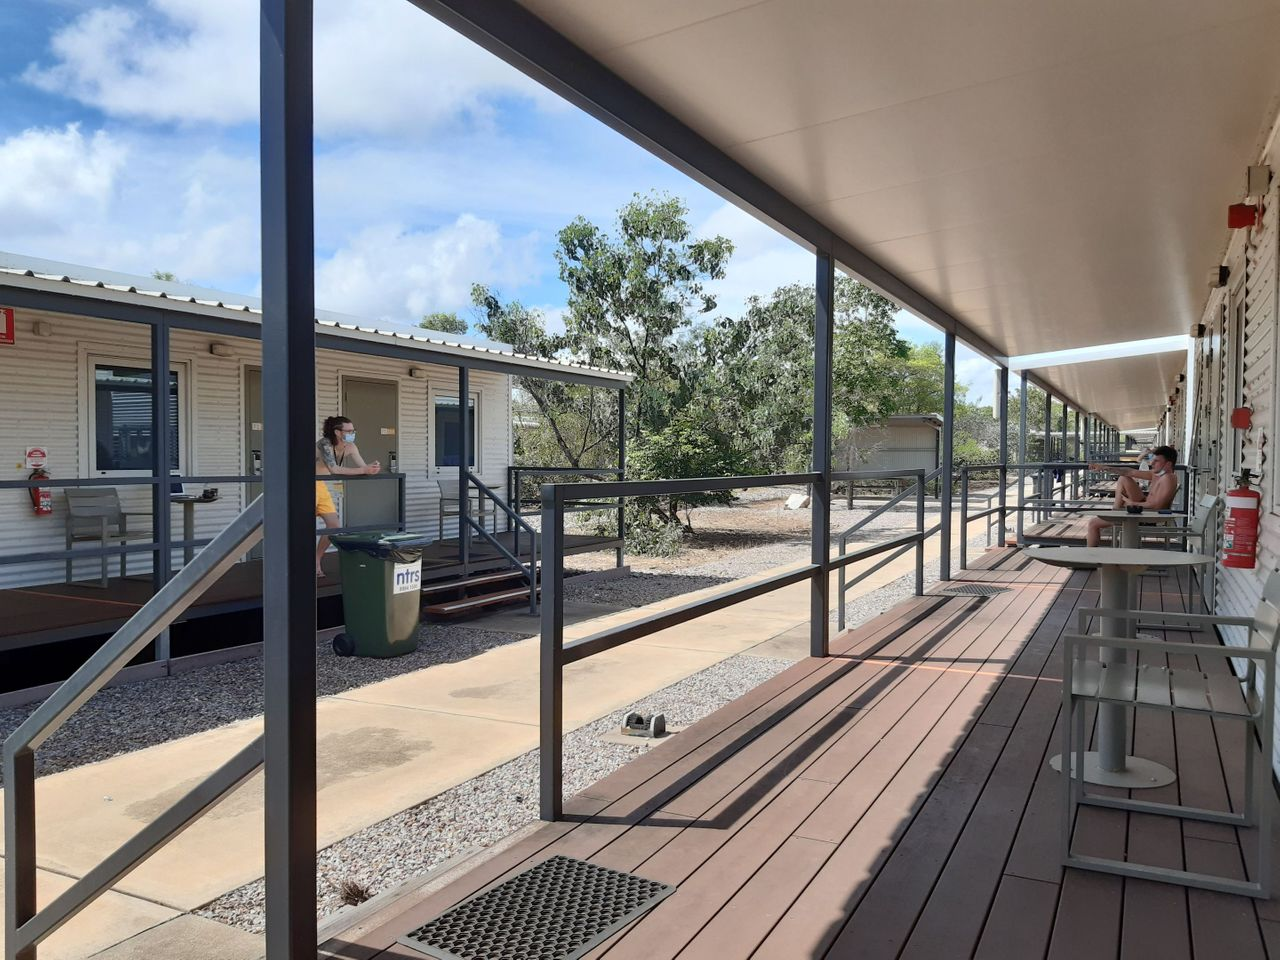 Started out in quarantine for 2 weeks in Darwin - Basically a prison!